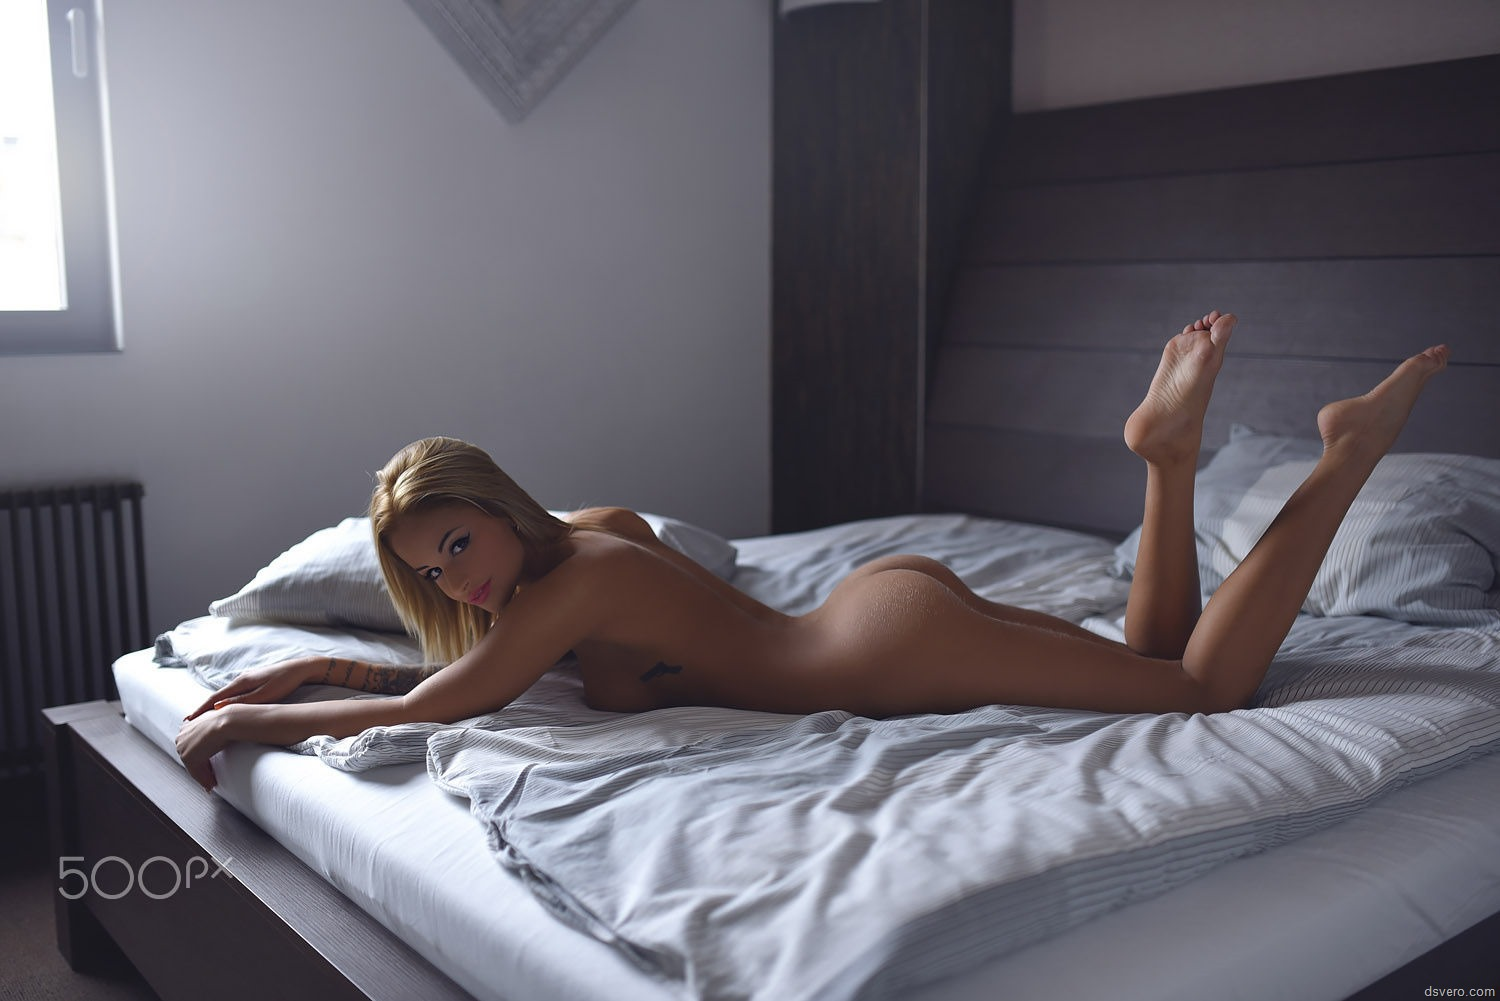 naked-girls-in-bedroom-nude-mix-vol4-77